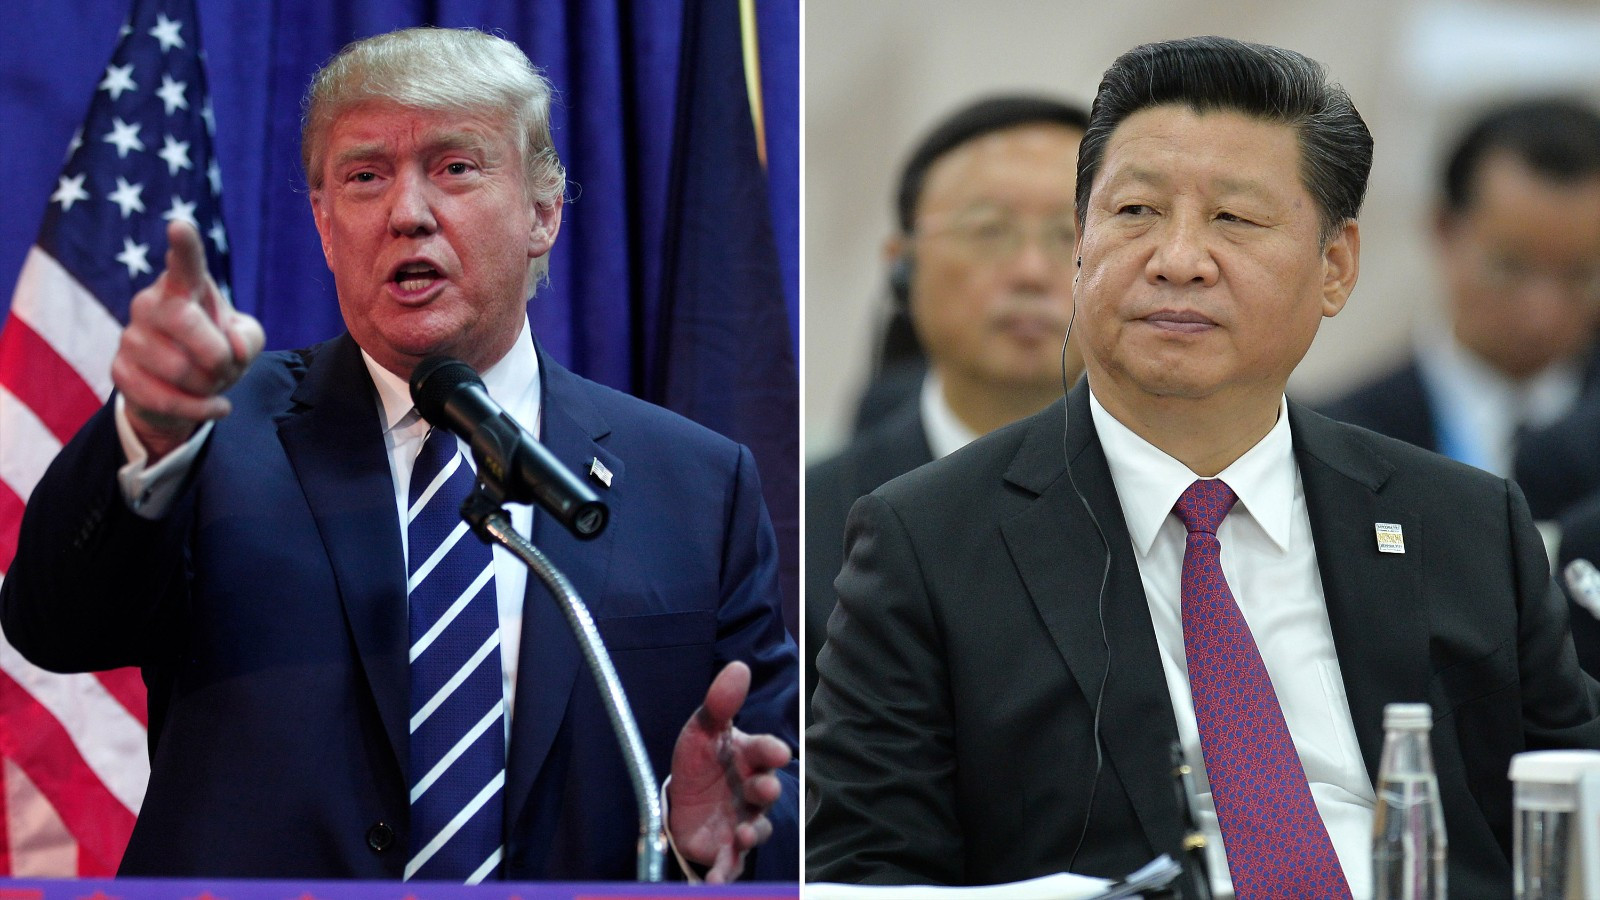 Trump warns China could face consequences if they deliberately misinformed the world on Coronavirus